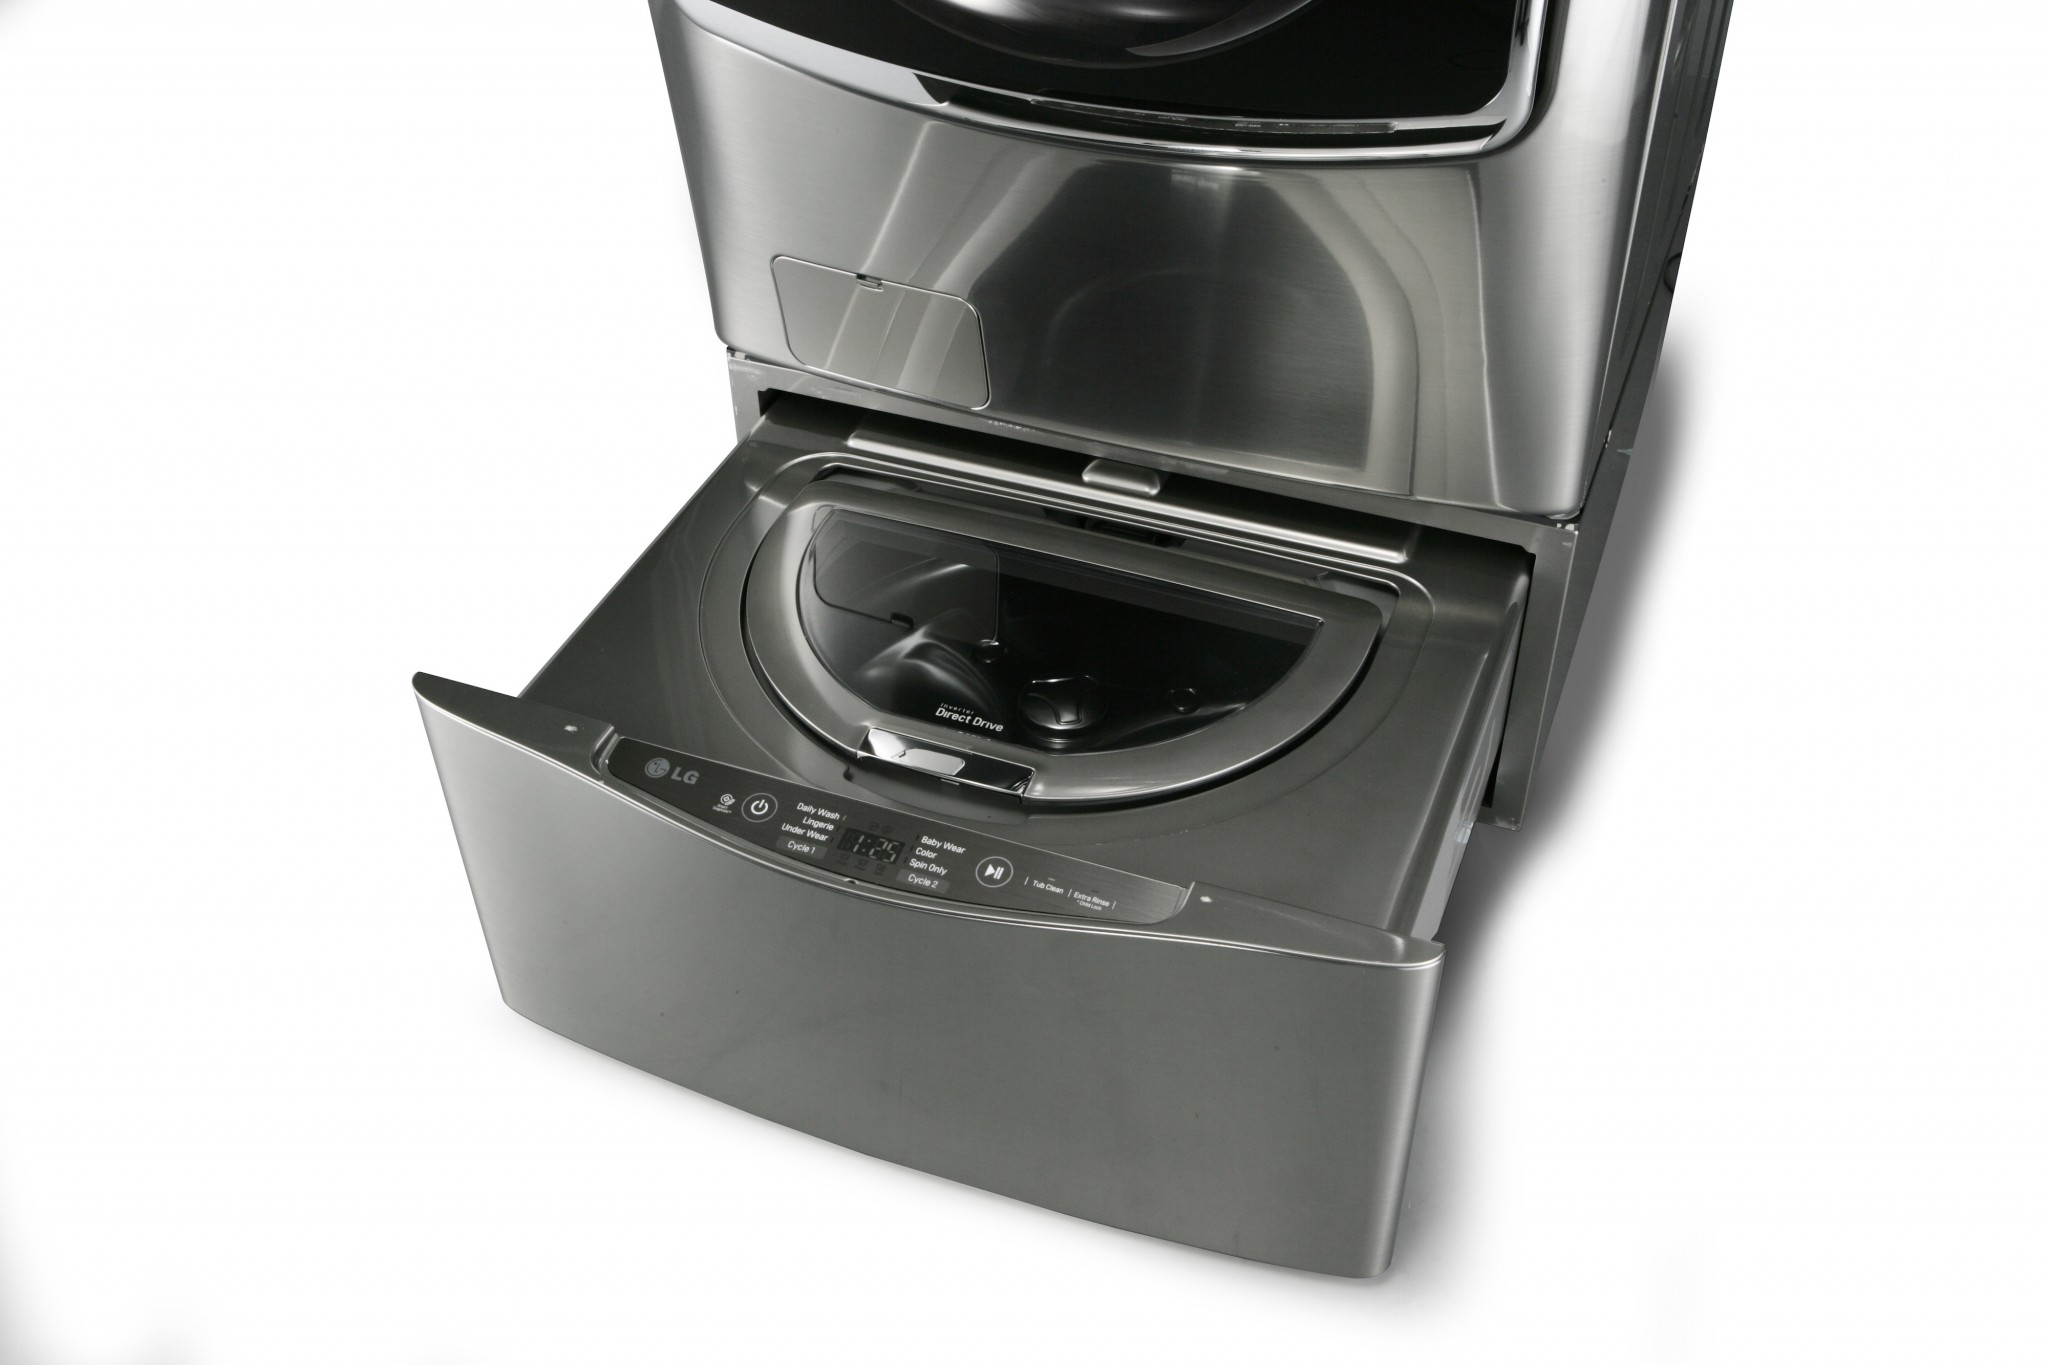 cu high steam ft with door home washers efficiency addwash fingerprint and p stainless samsung washer star front black the load dryer in pedestal resistant pedestals energy depot